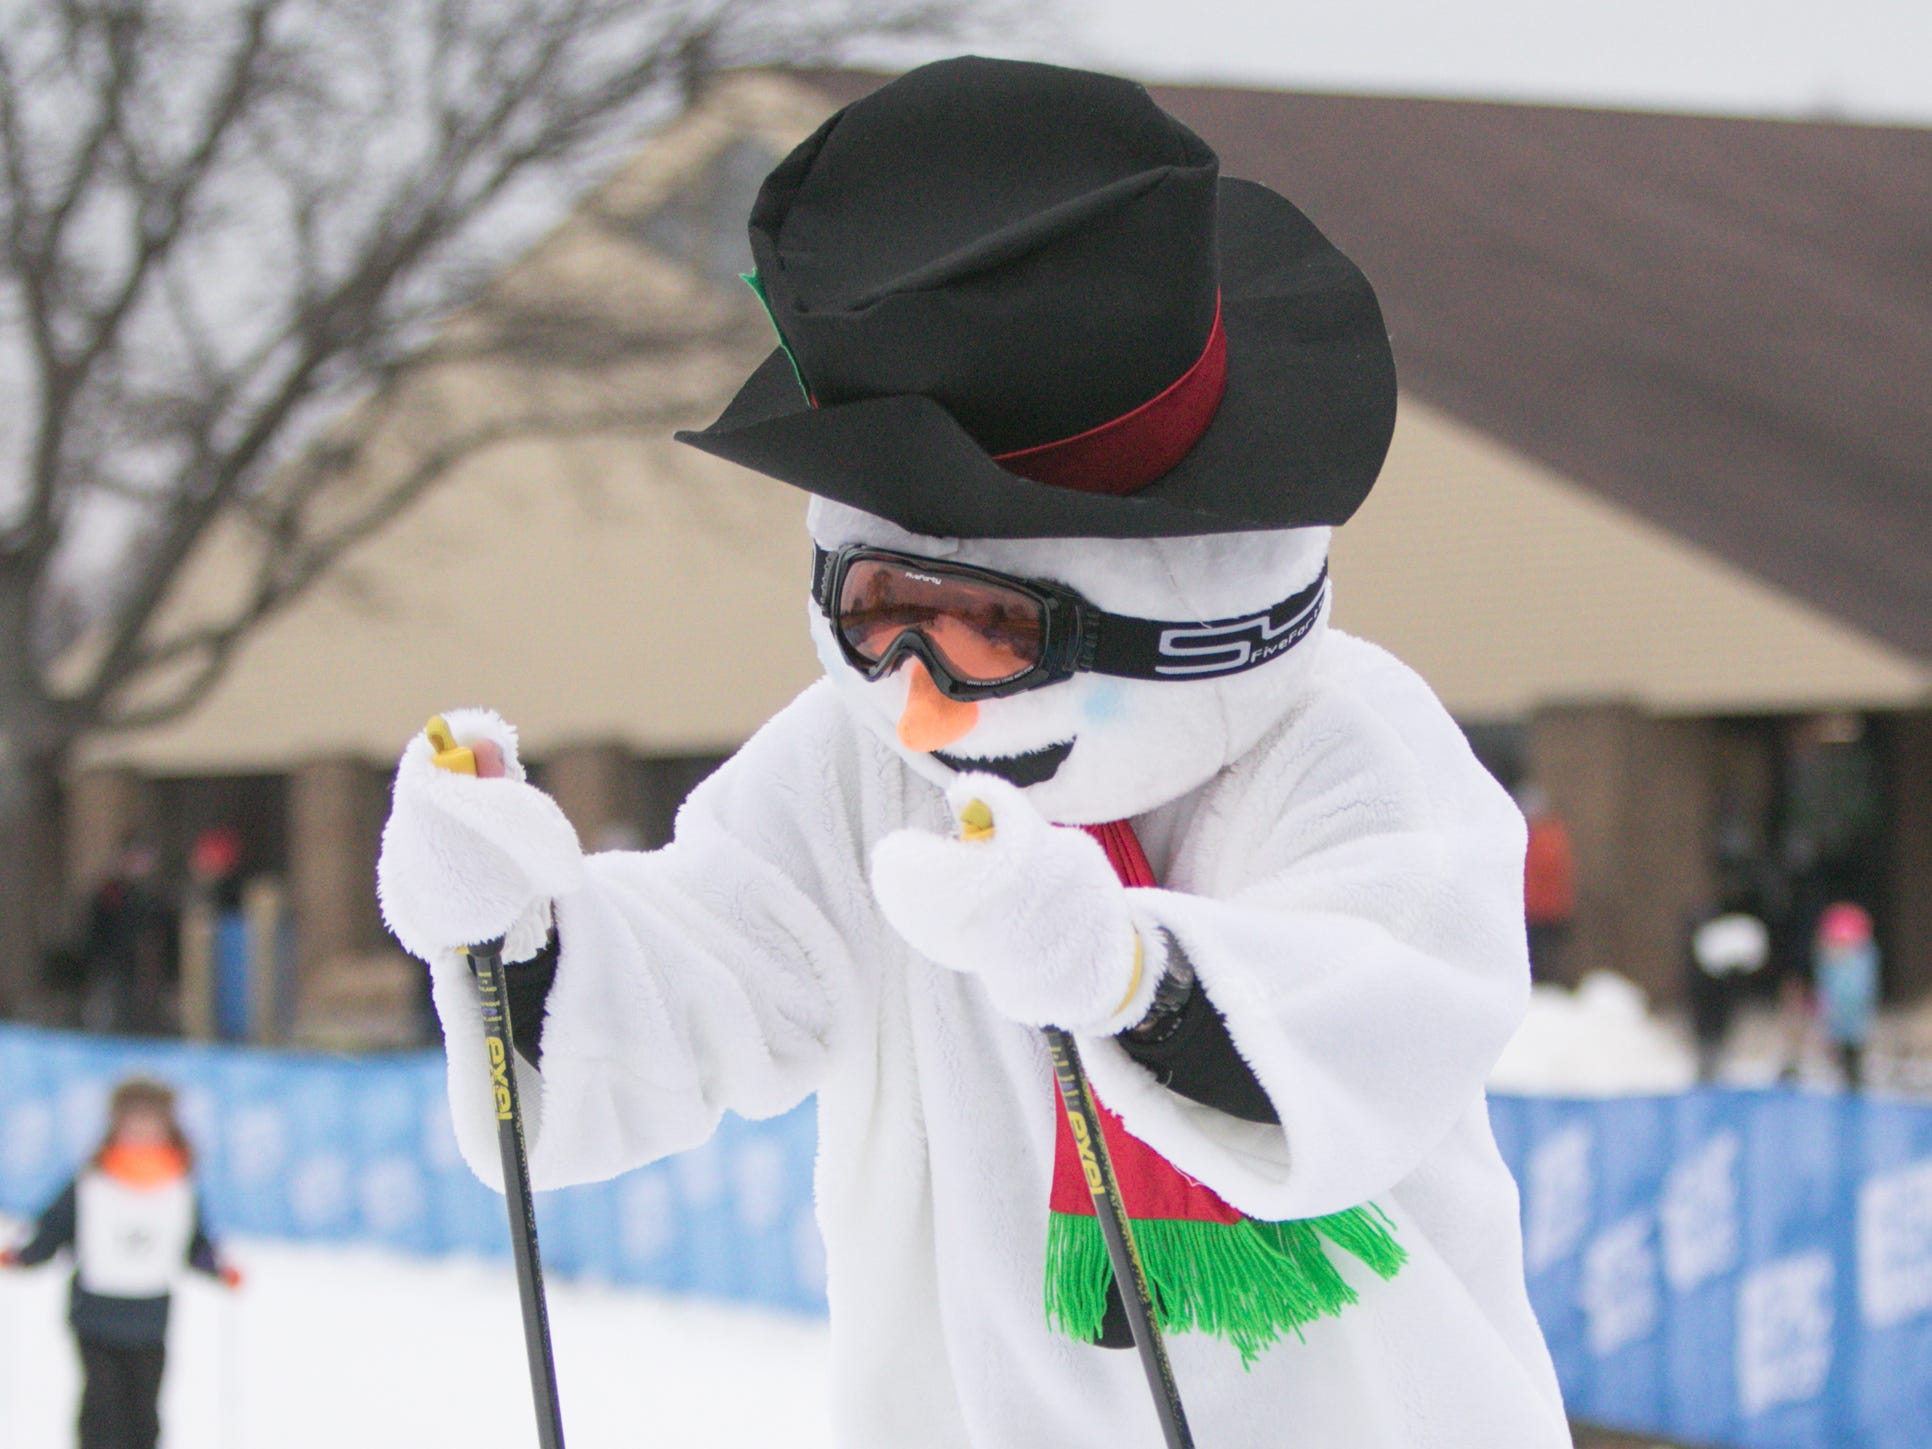 Frosty the skiing snowman accompanies kids age five to 11 in the Frosty Ski Fest kids' race Saturday, Jan. 12, 2019.